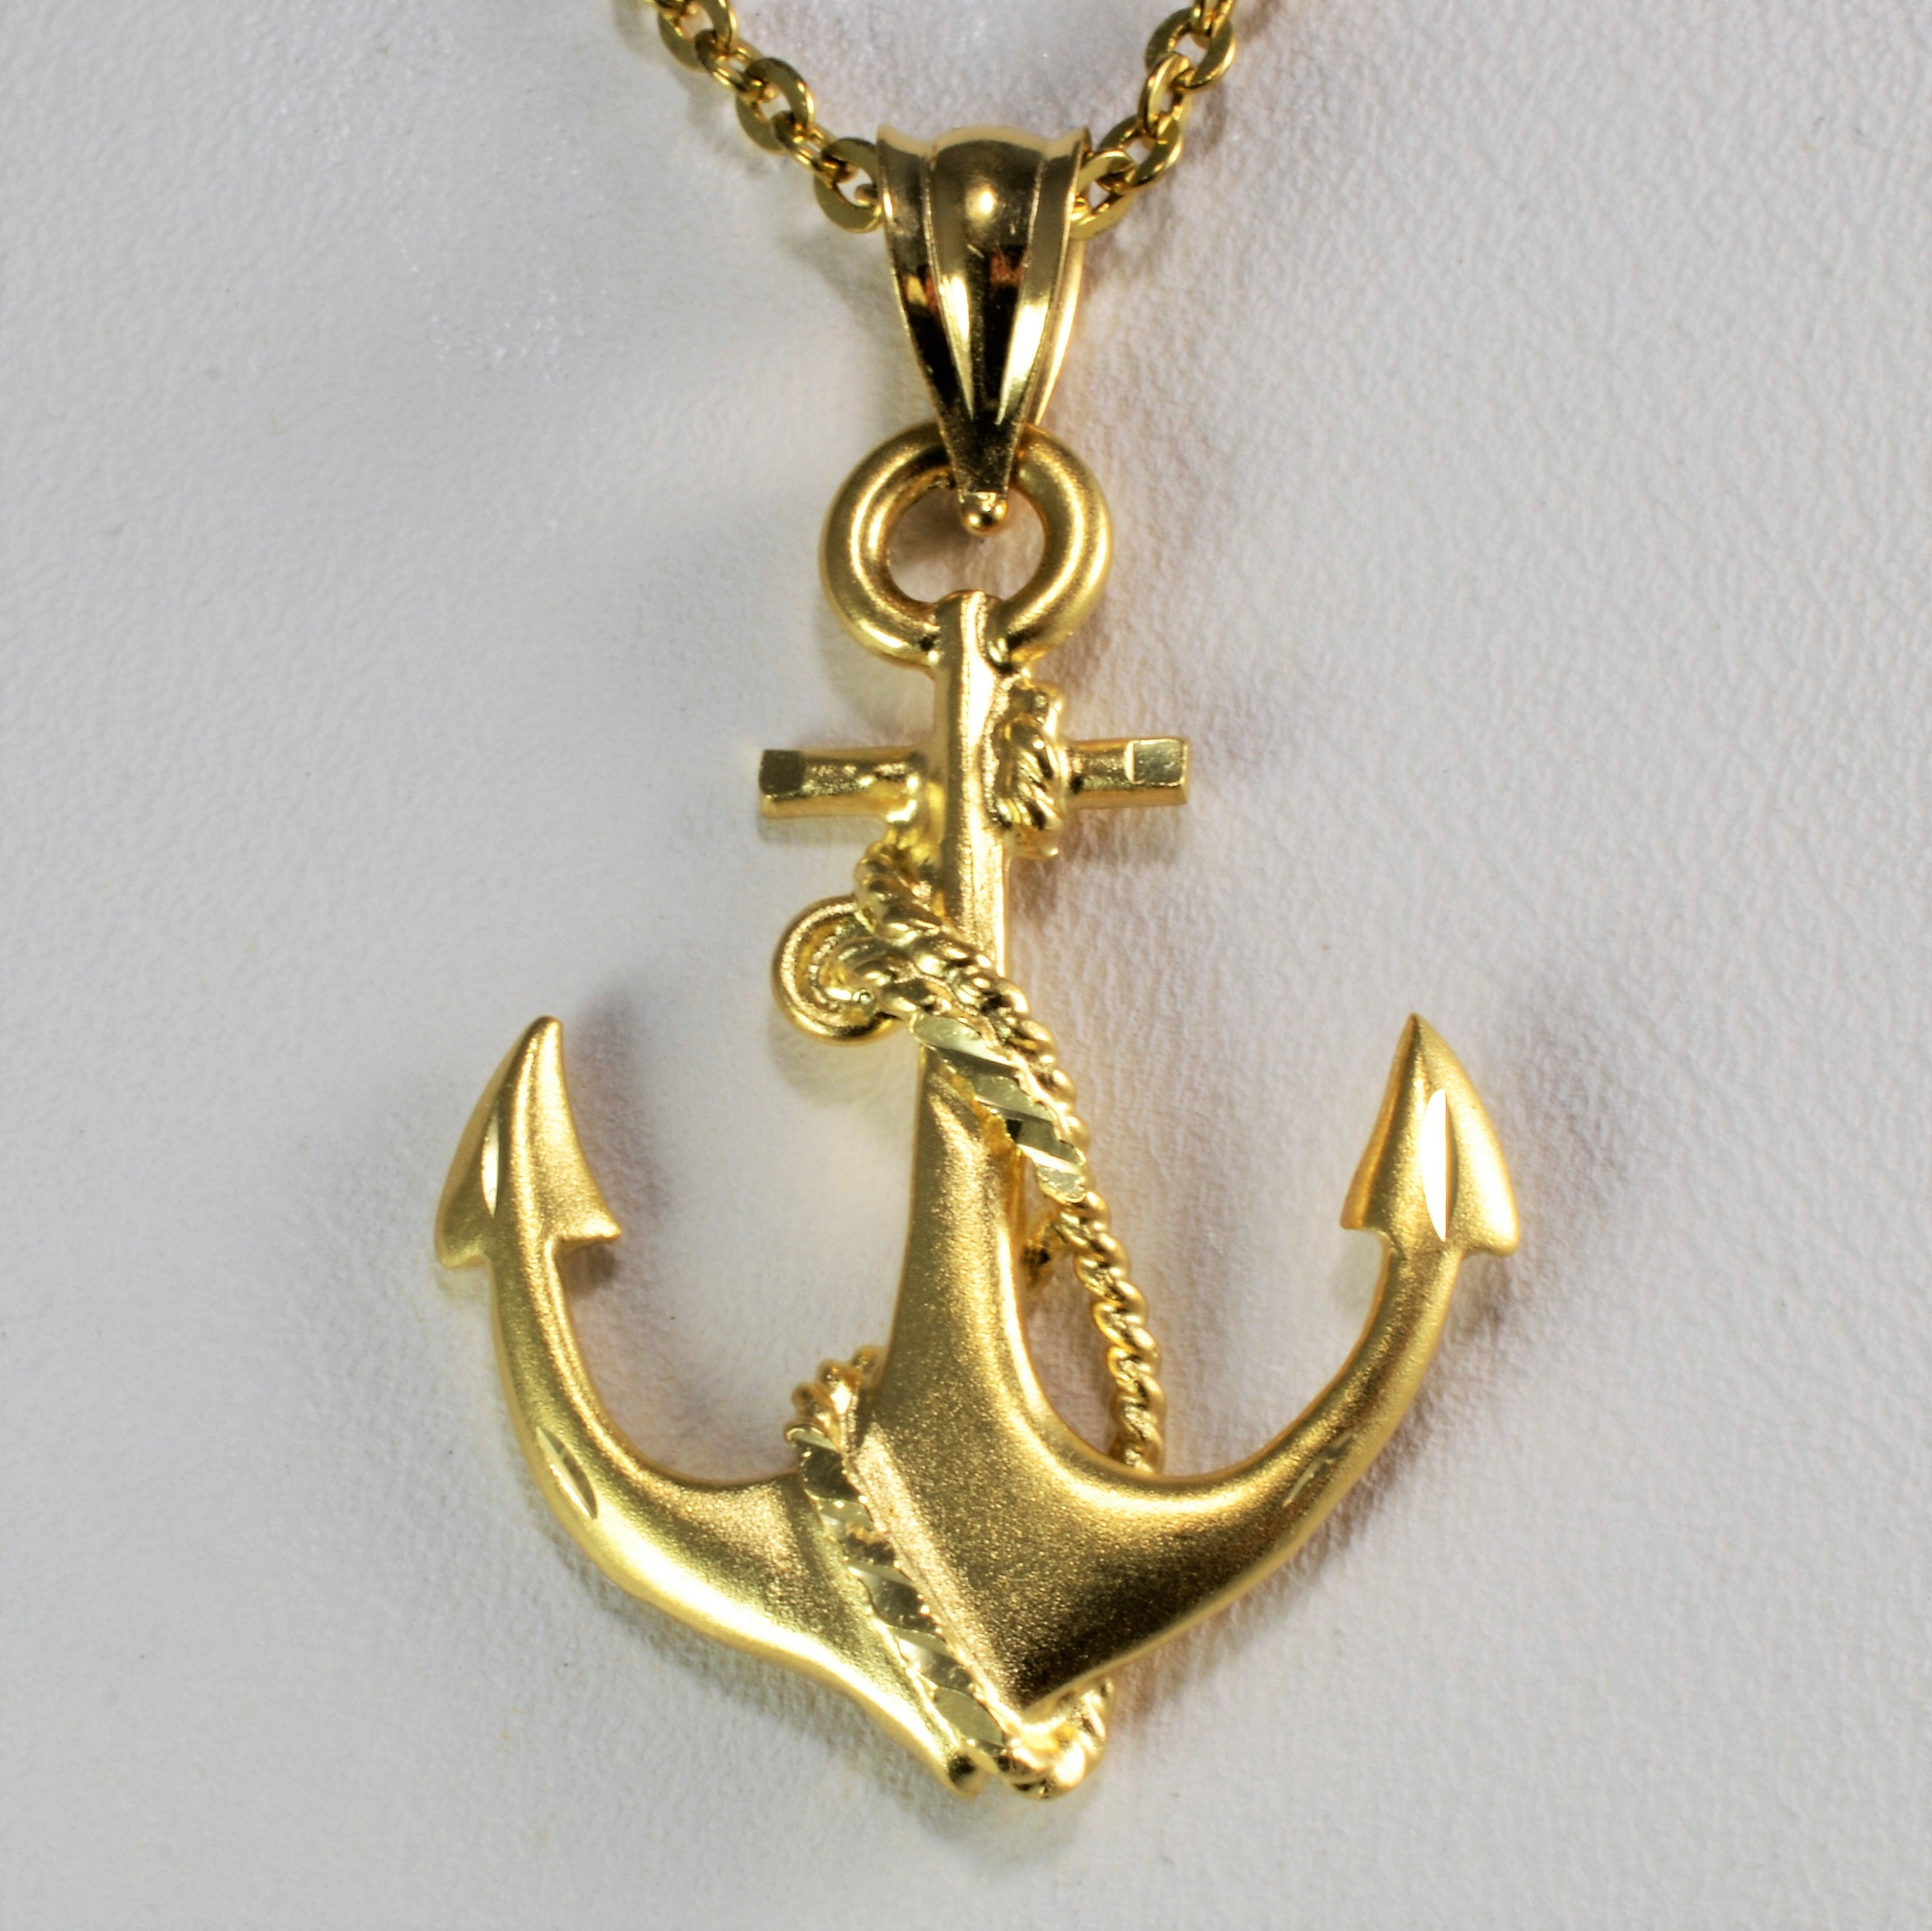 14K Yellow Gold Anchor Pendant Necklace 22 100 Ways